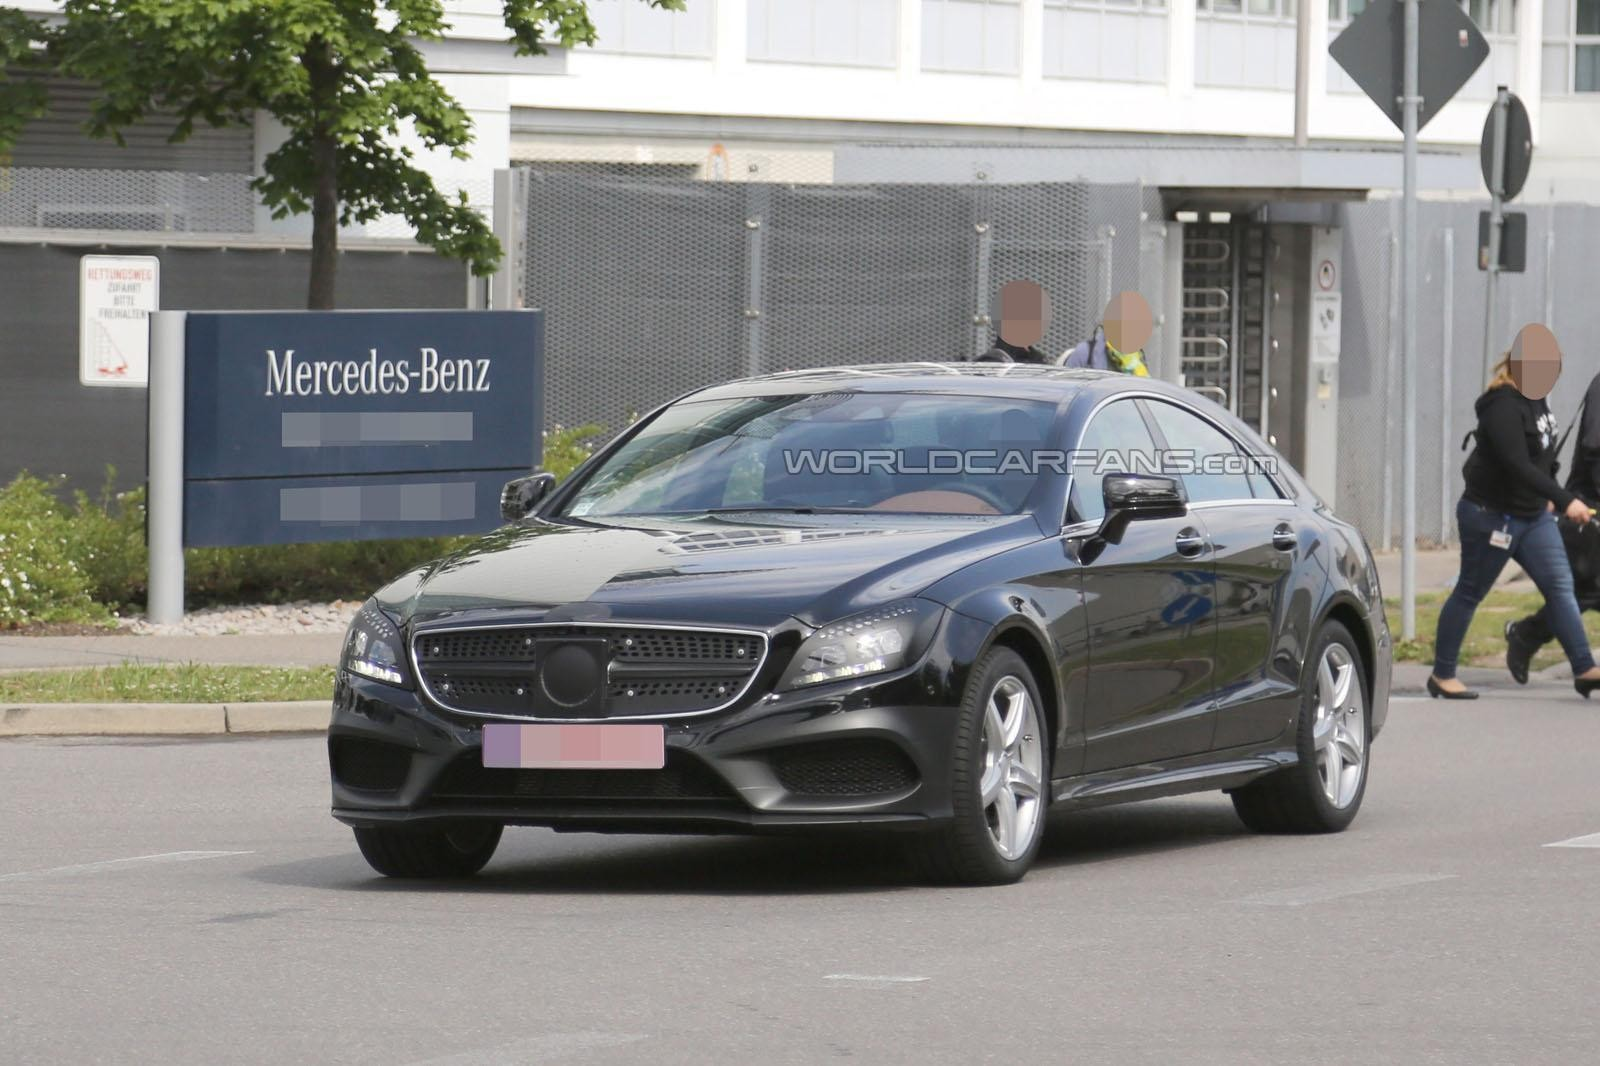 2015-mercedes-cls-spy-photo-10jpg.jpg